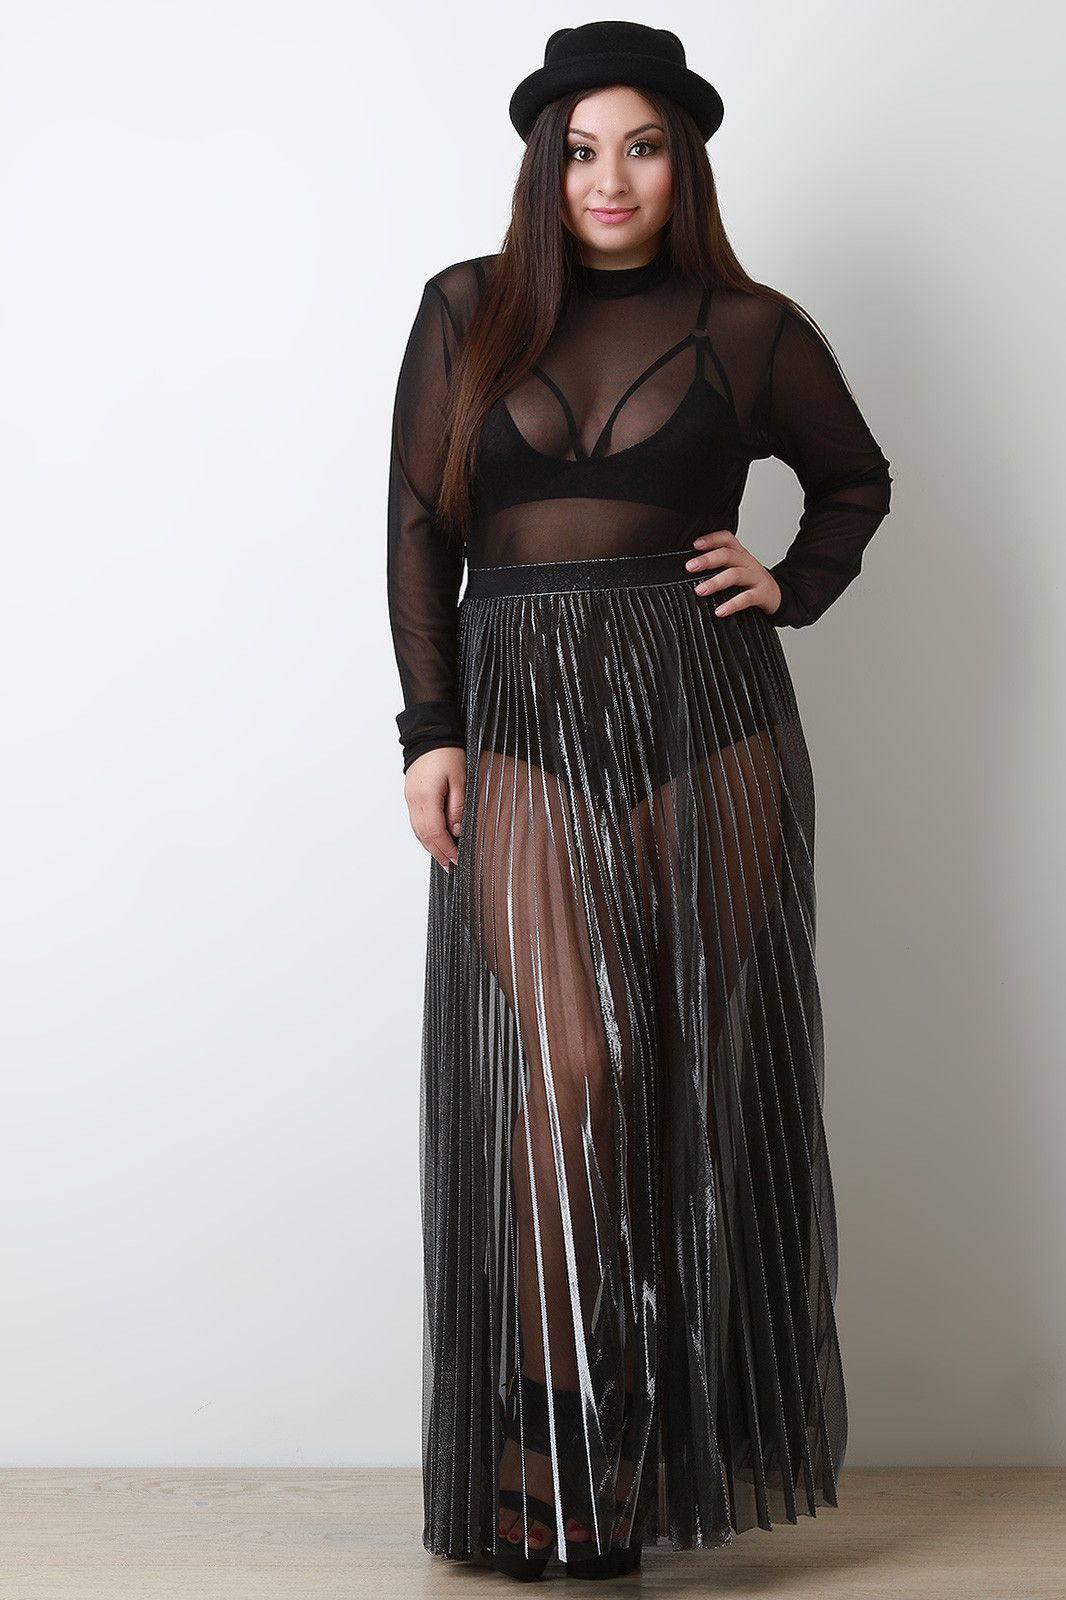 Pin by tamara santana on moda pinterest sheer maxi skirt and